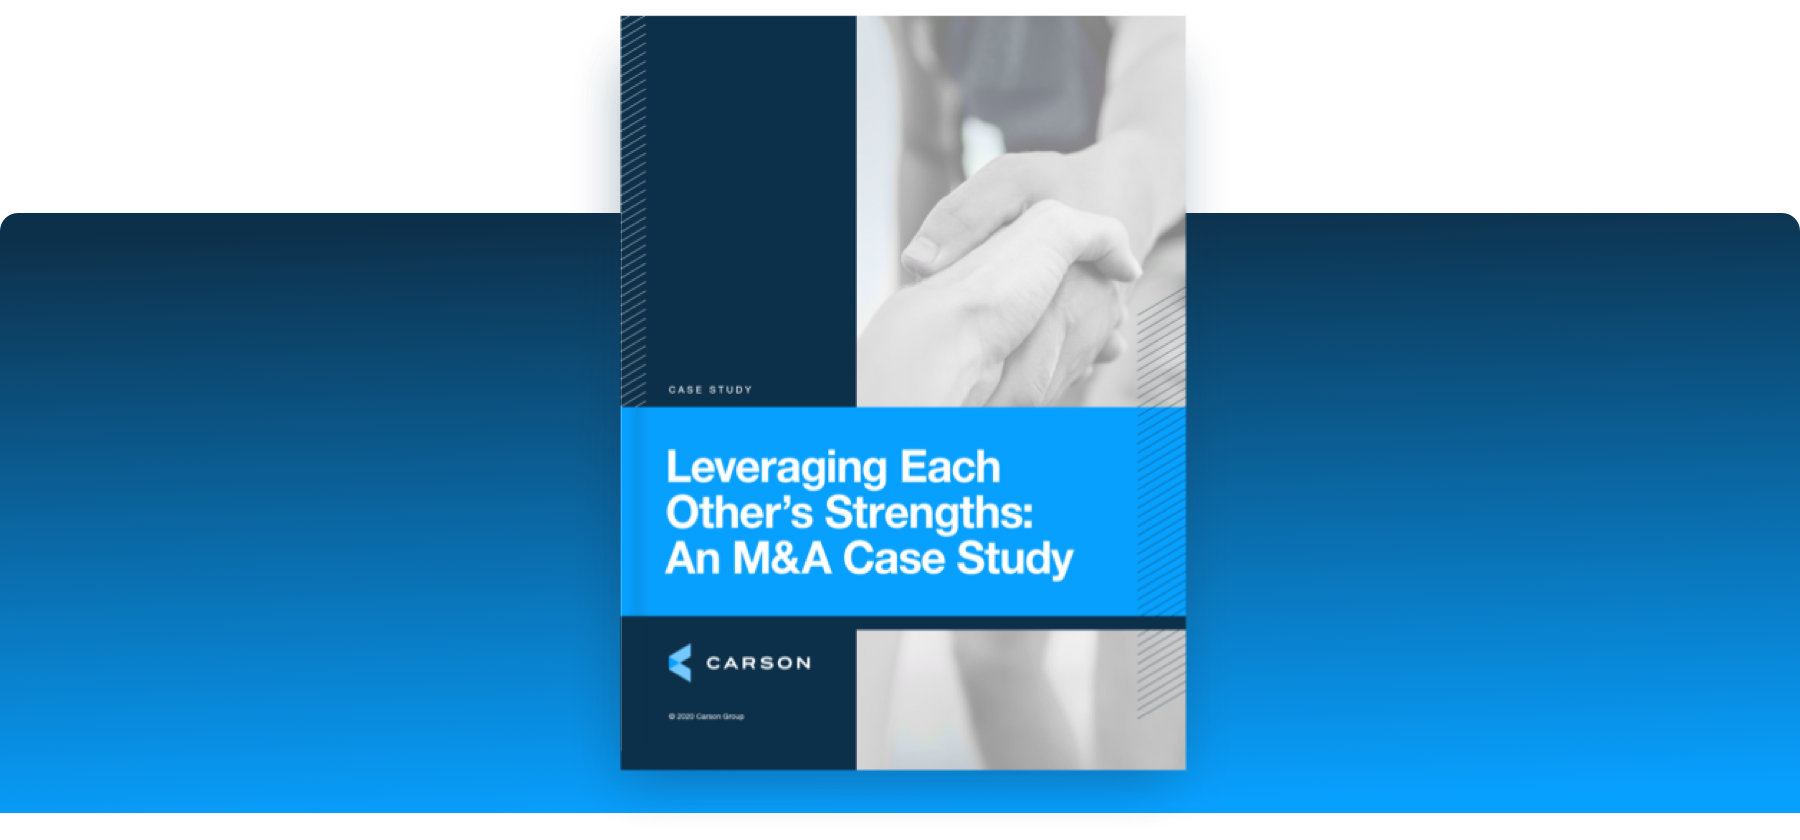 Leveraging Each Other's Strengths: An M&A Case Study